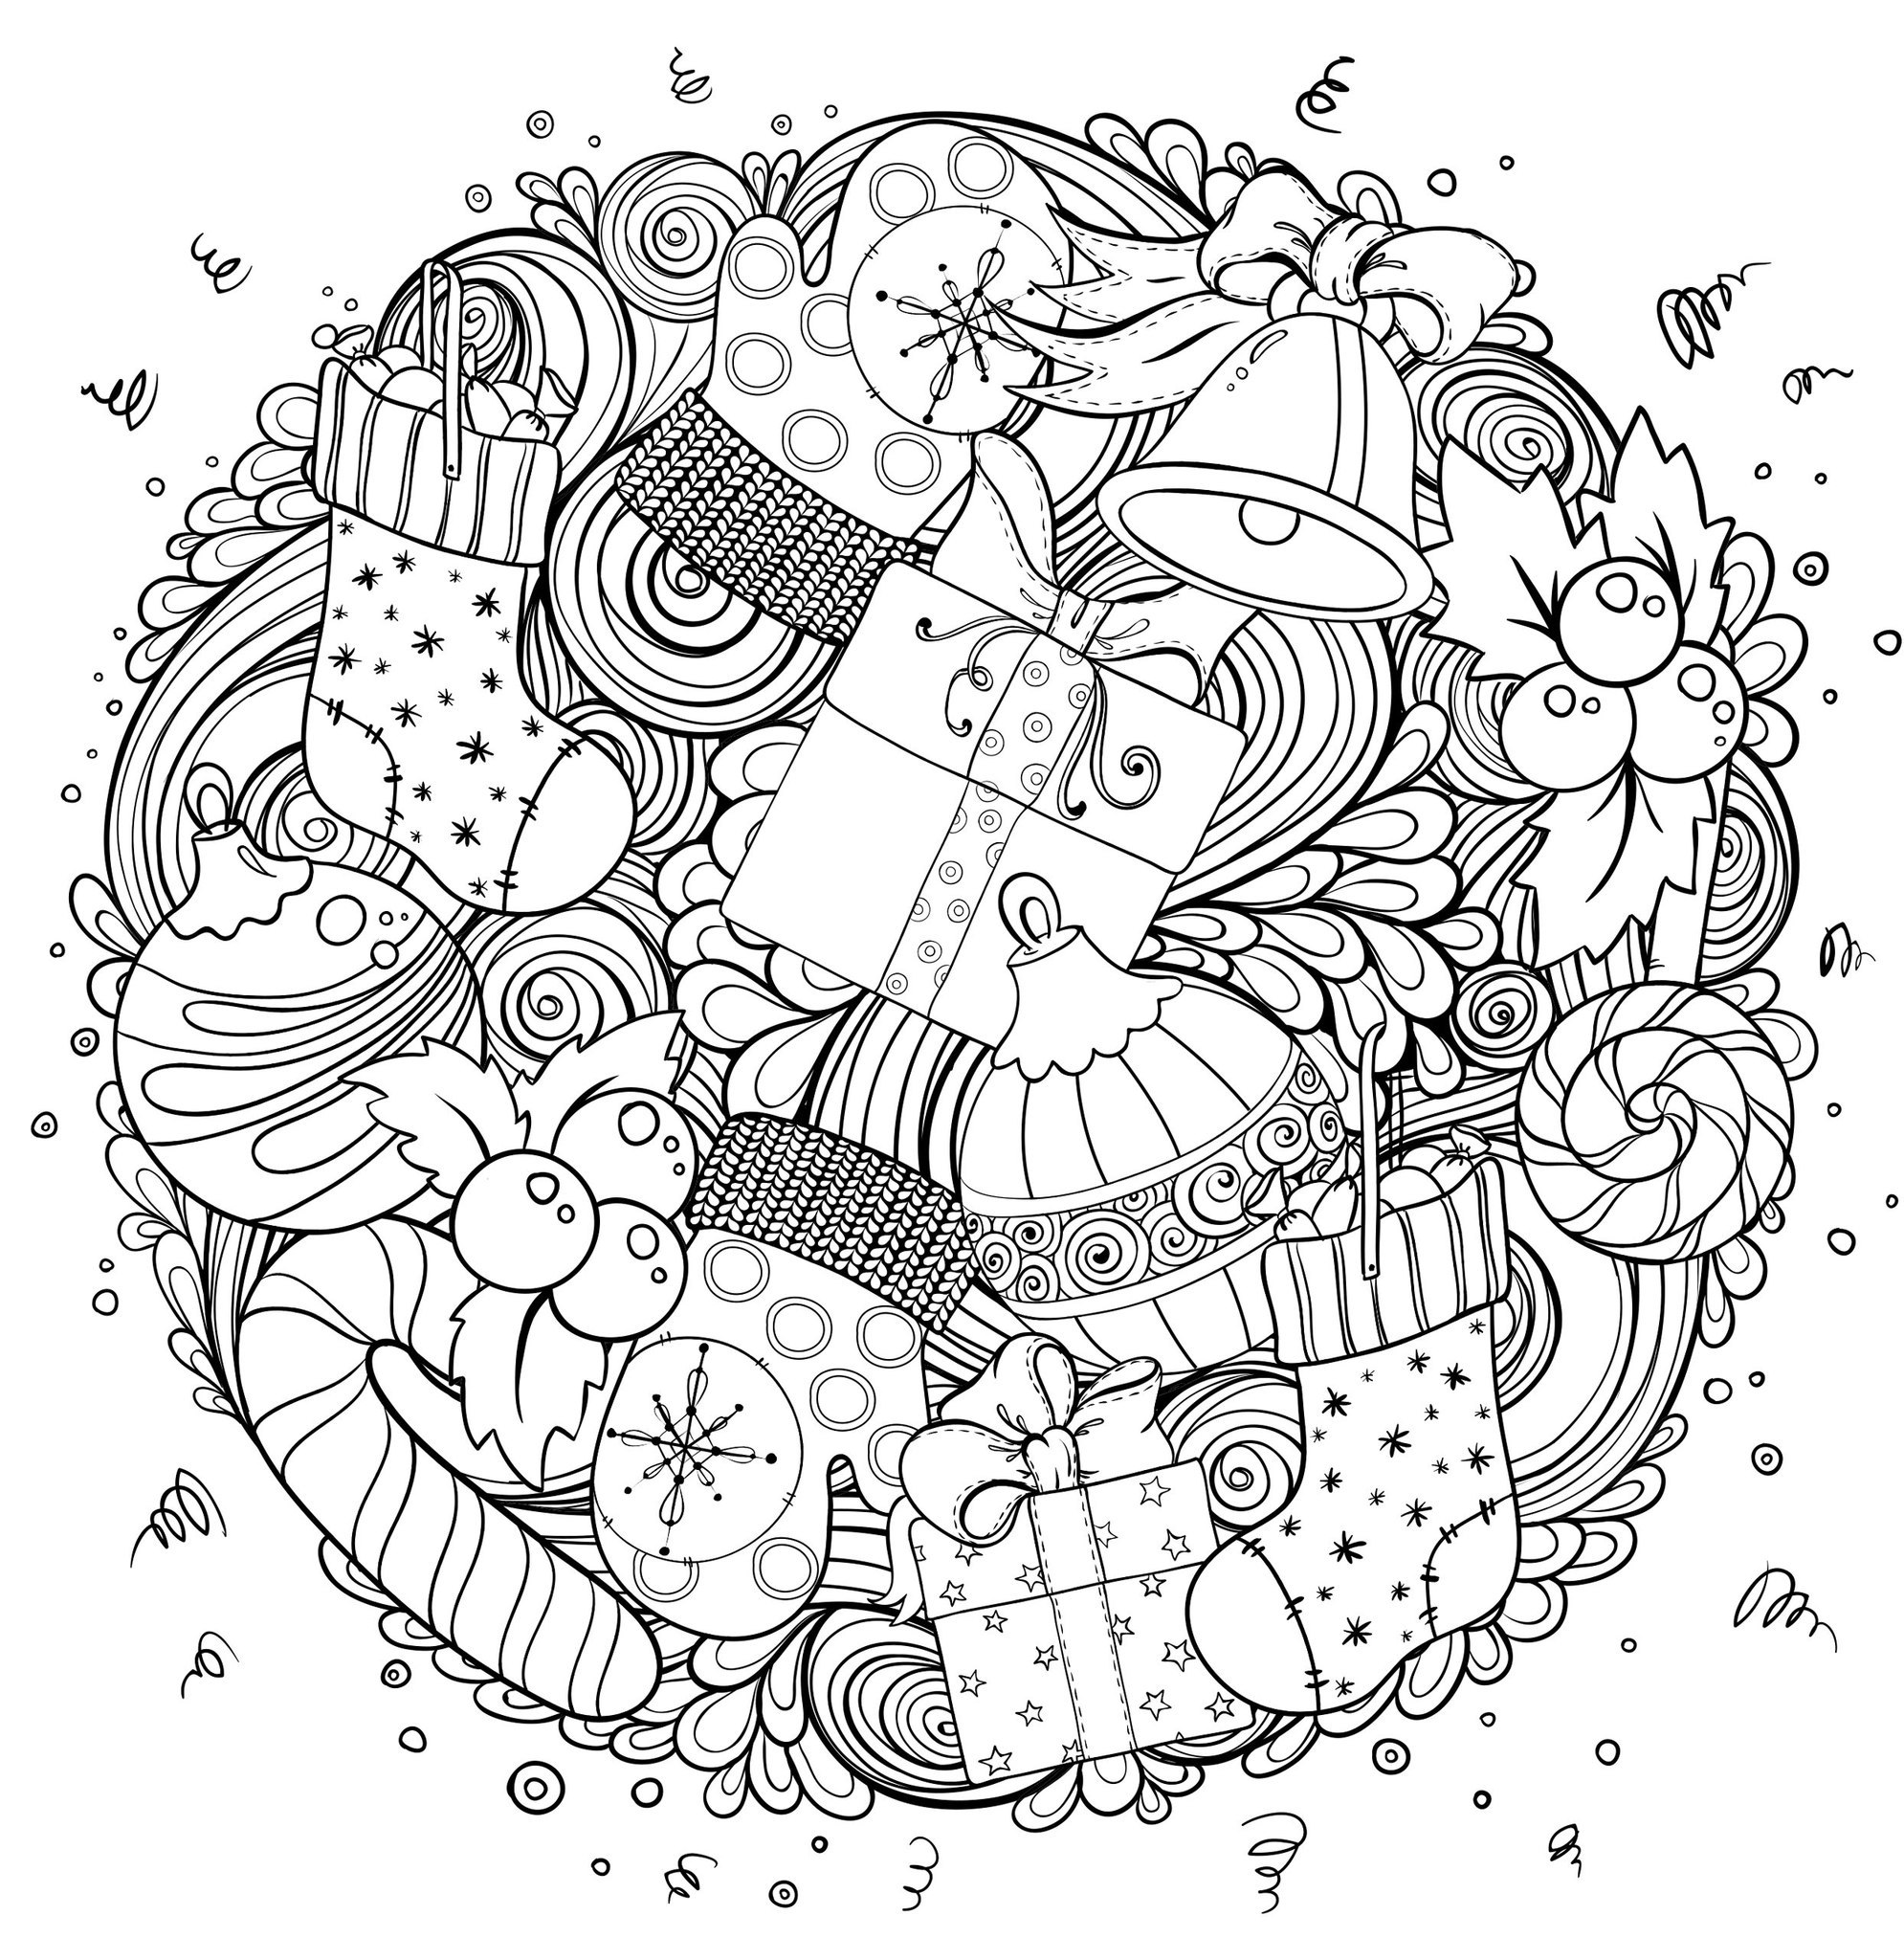 Mindfulness Coloring Christmas Paper Chains Coloring Pages